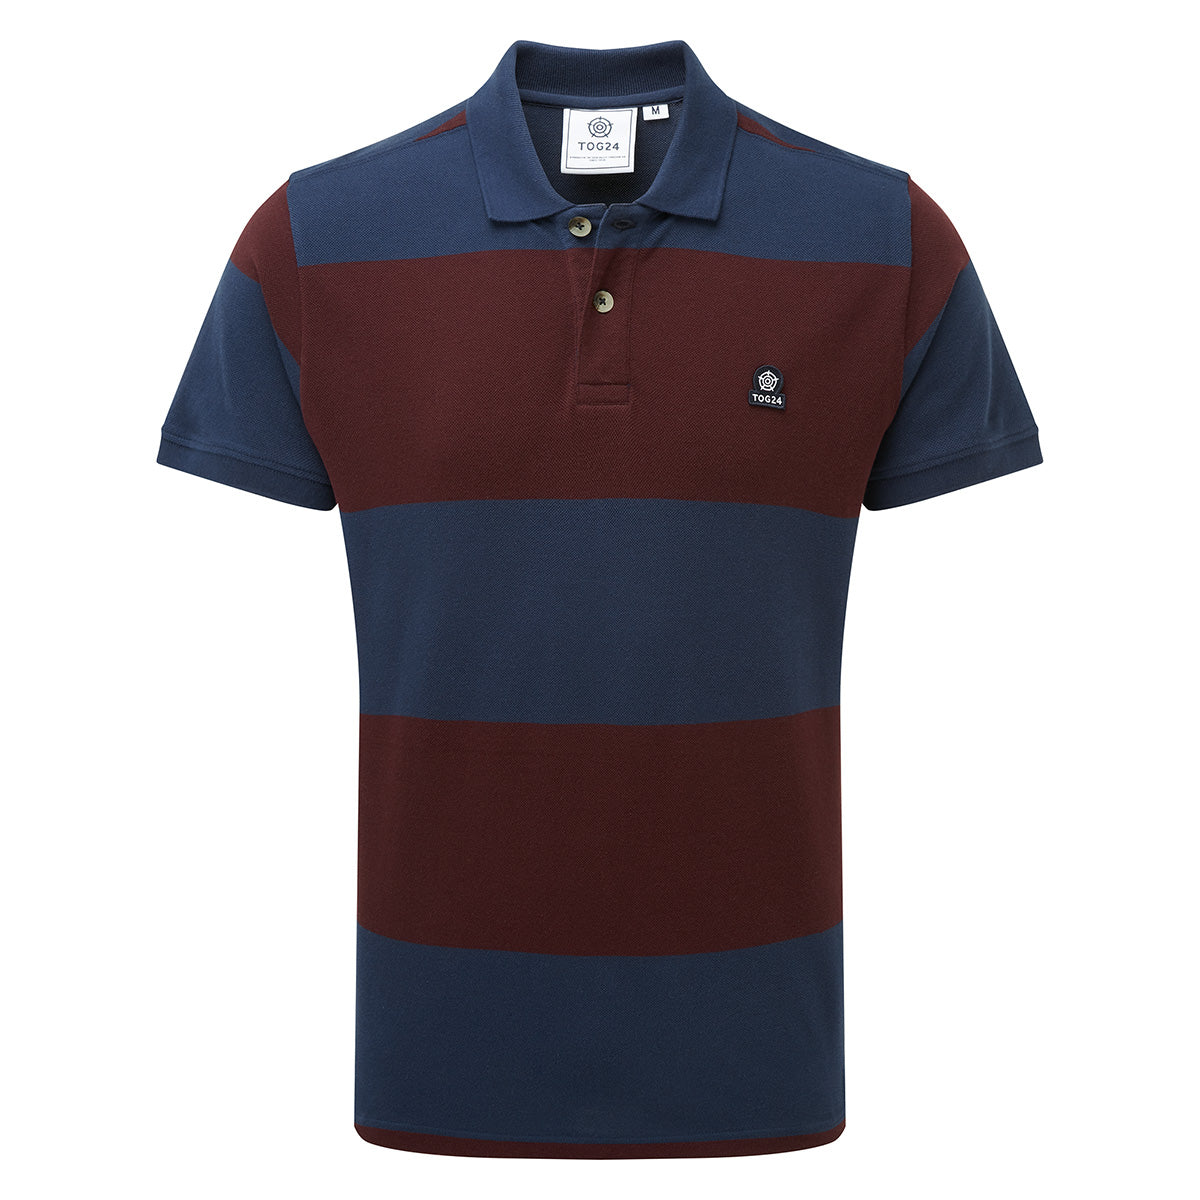 Seacroft Mens Pique Stripe Polo - Naval Blue Stripe image 4